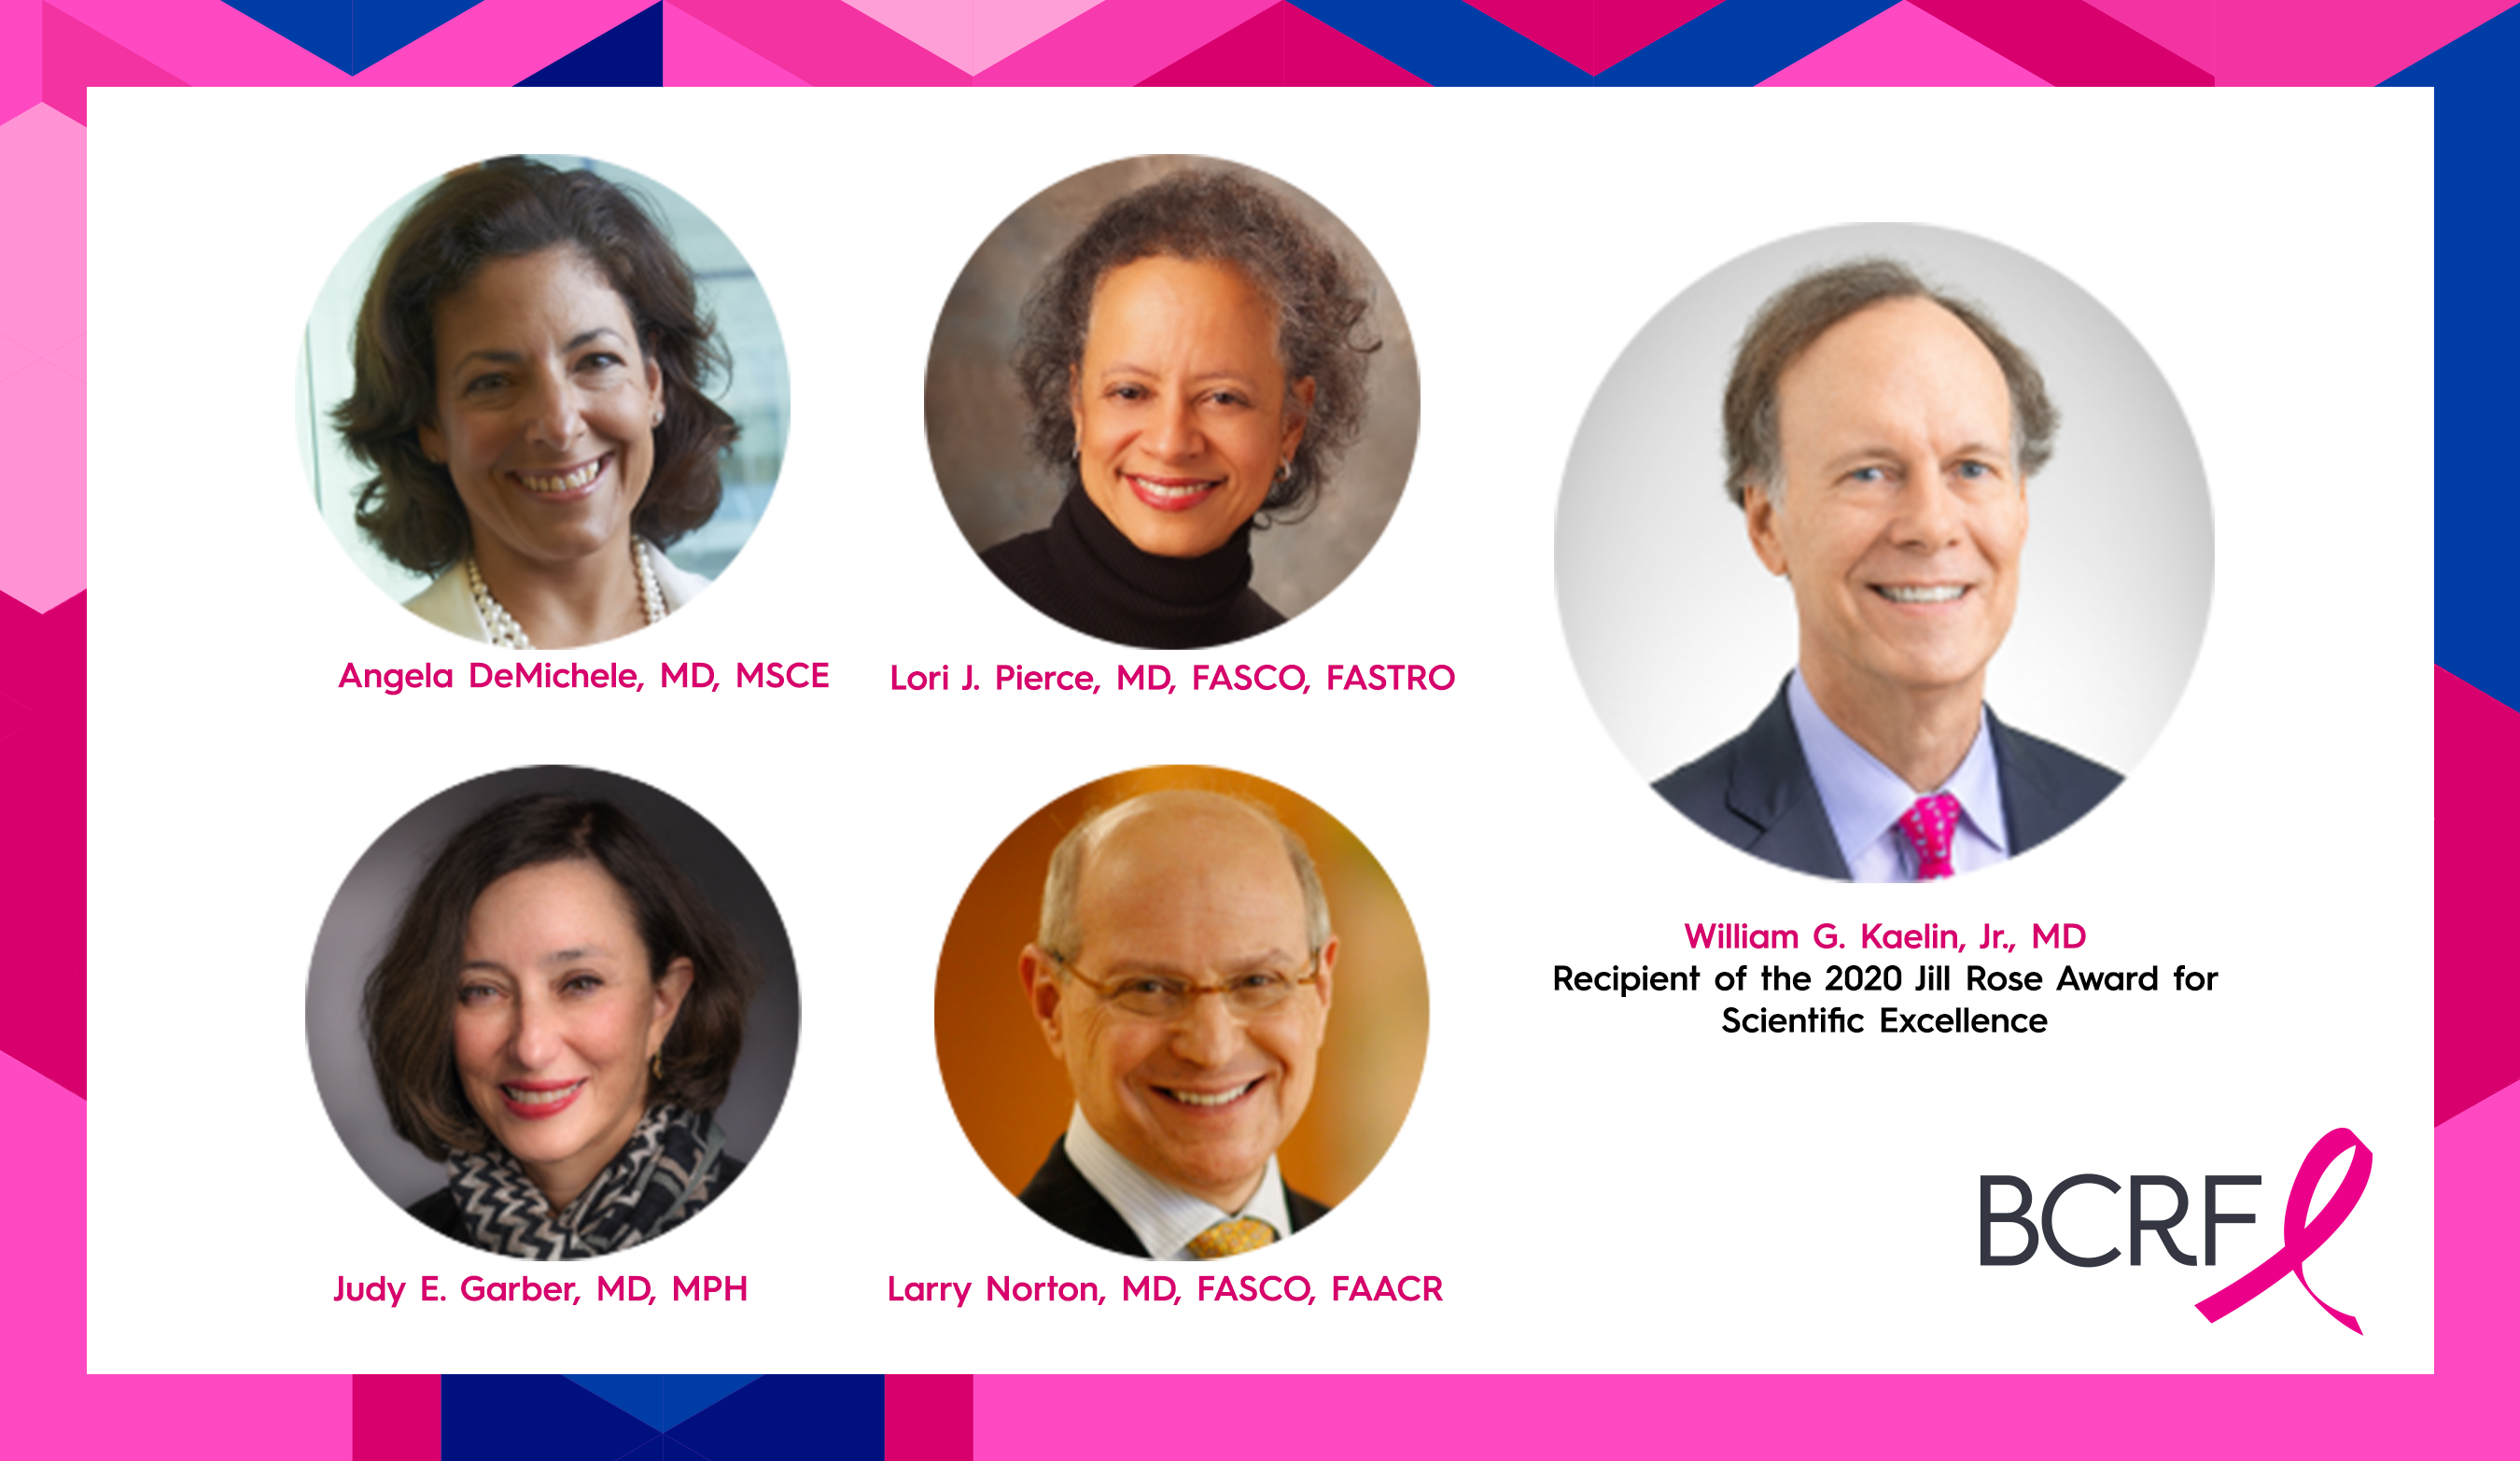 Get to Know the Panelists at This Year's Symposium and Awards Luncheon